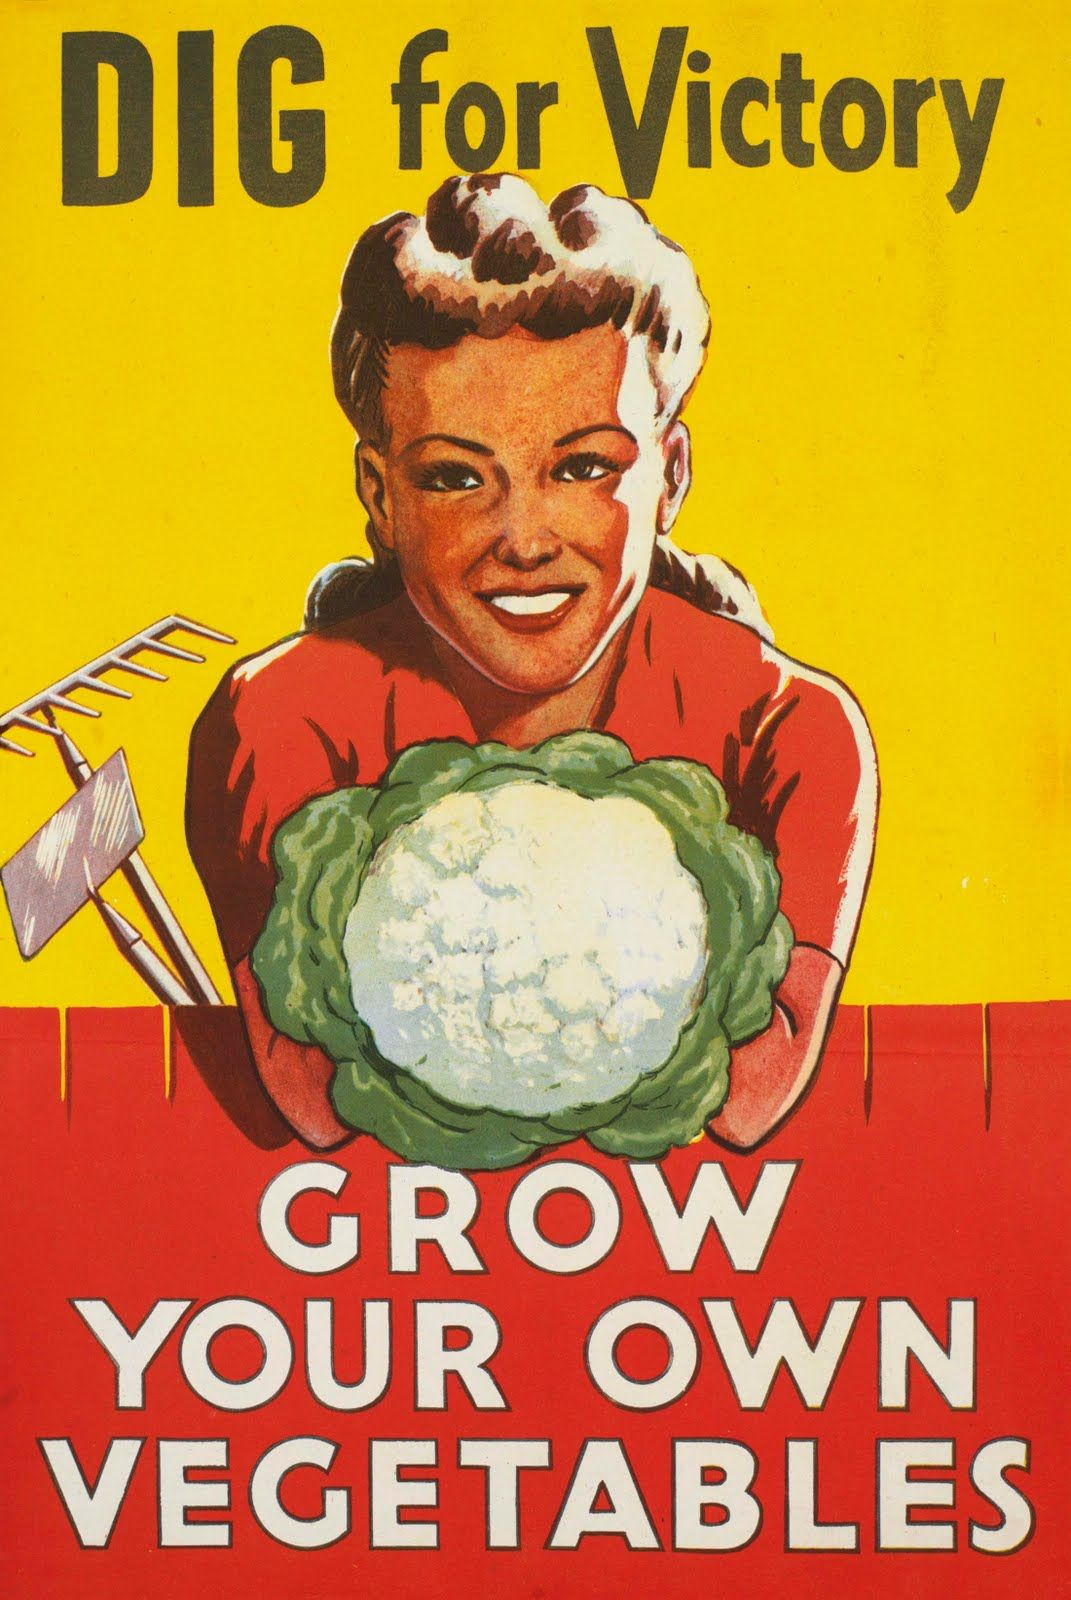 How to Dig for Victory Gardens